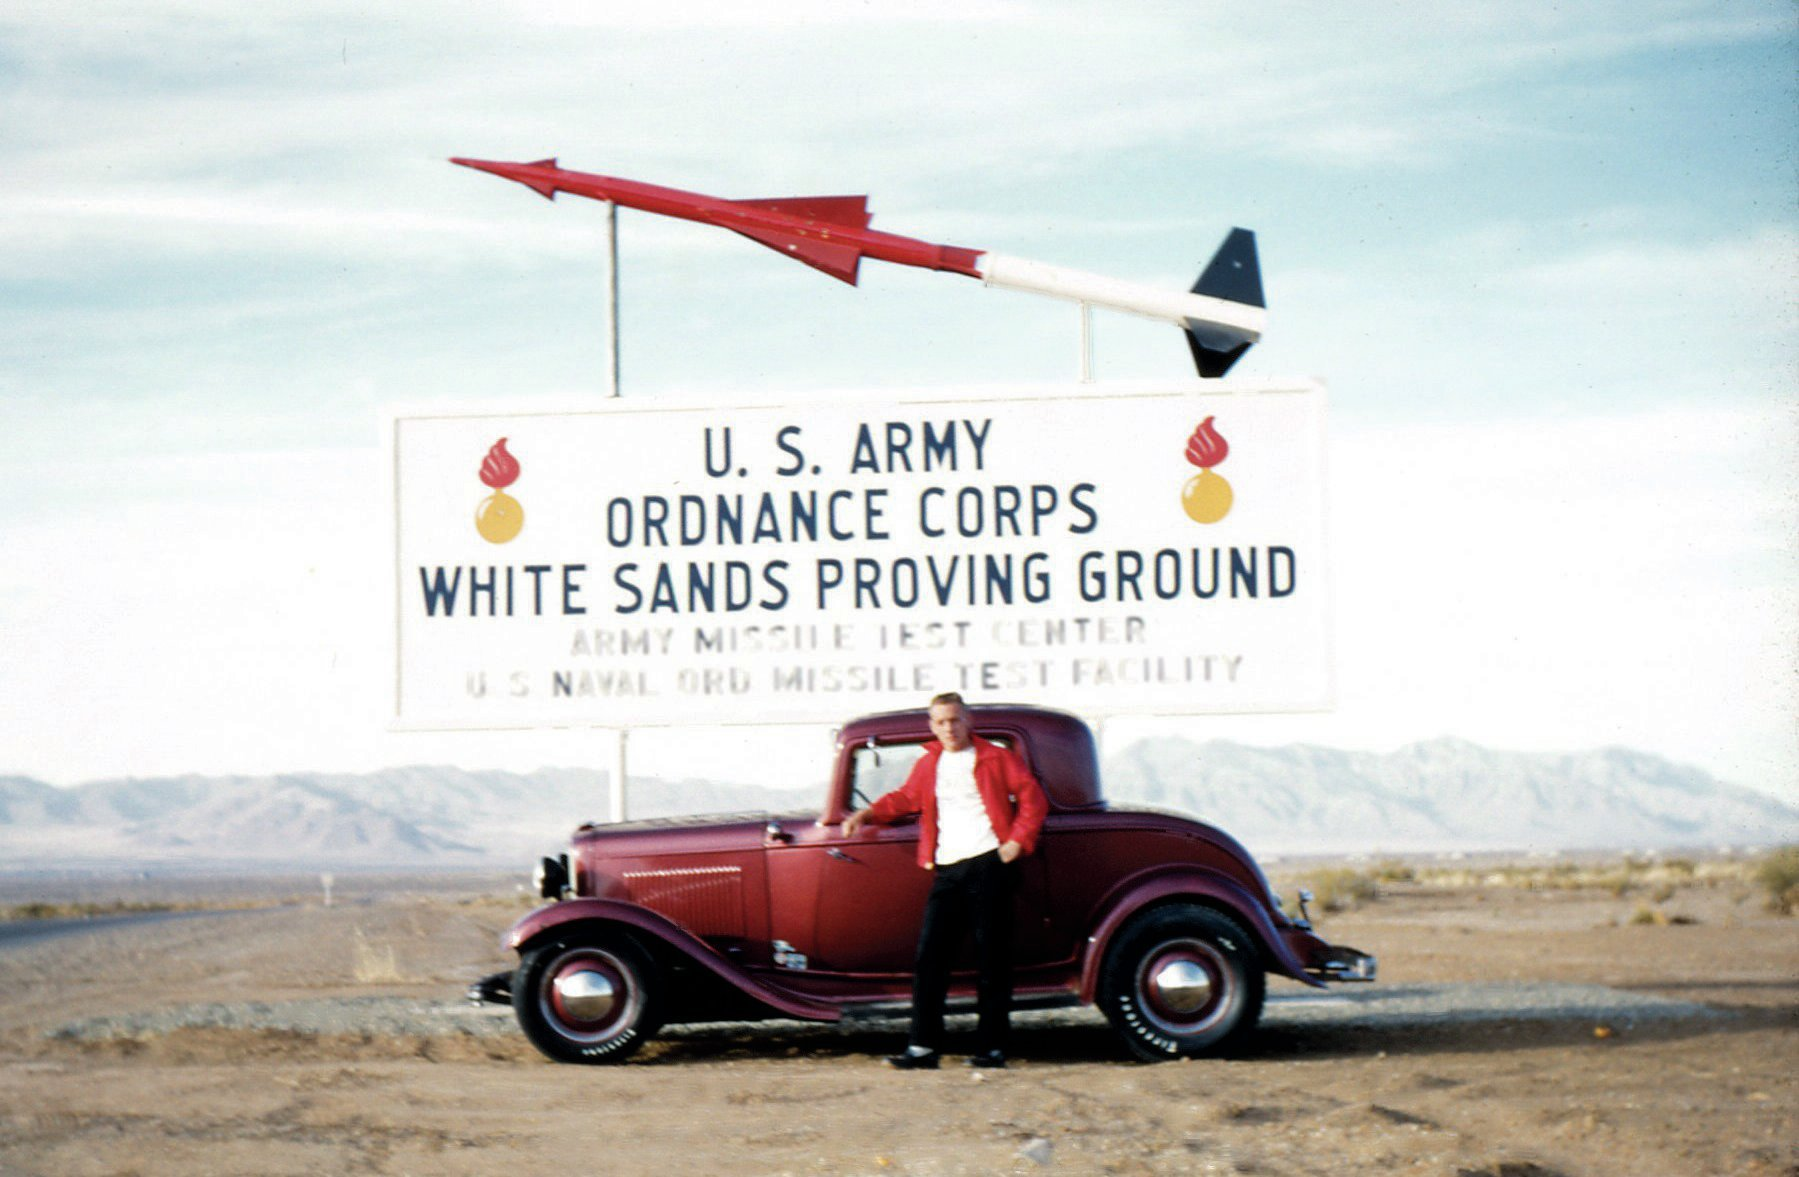 Nick's father, Bud, poses with his three-window coupe at the White Sands Proving Grounds in New Mexico, where he worked as a propulsion engineer when the photo was taken in 1957 or '58. Photos like these in the family scrapbooks helped shape Nick's sense of what he wanted in his own hot rod.